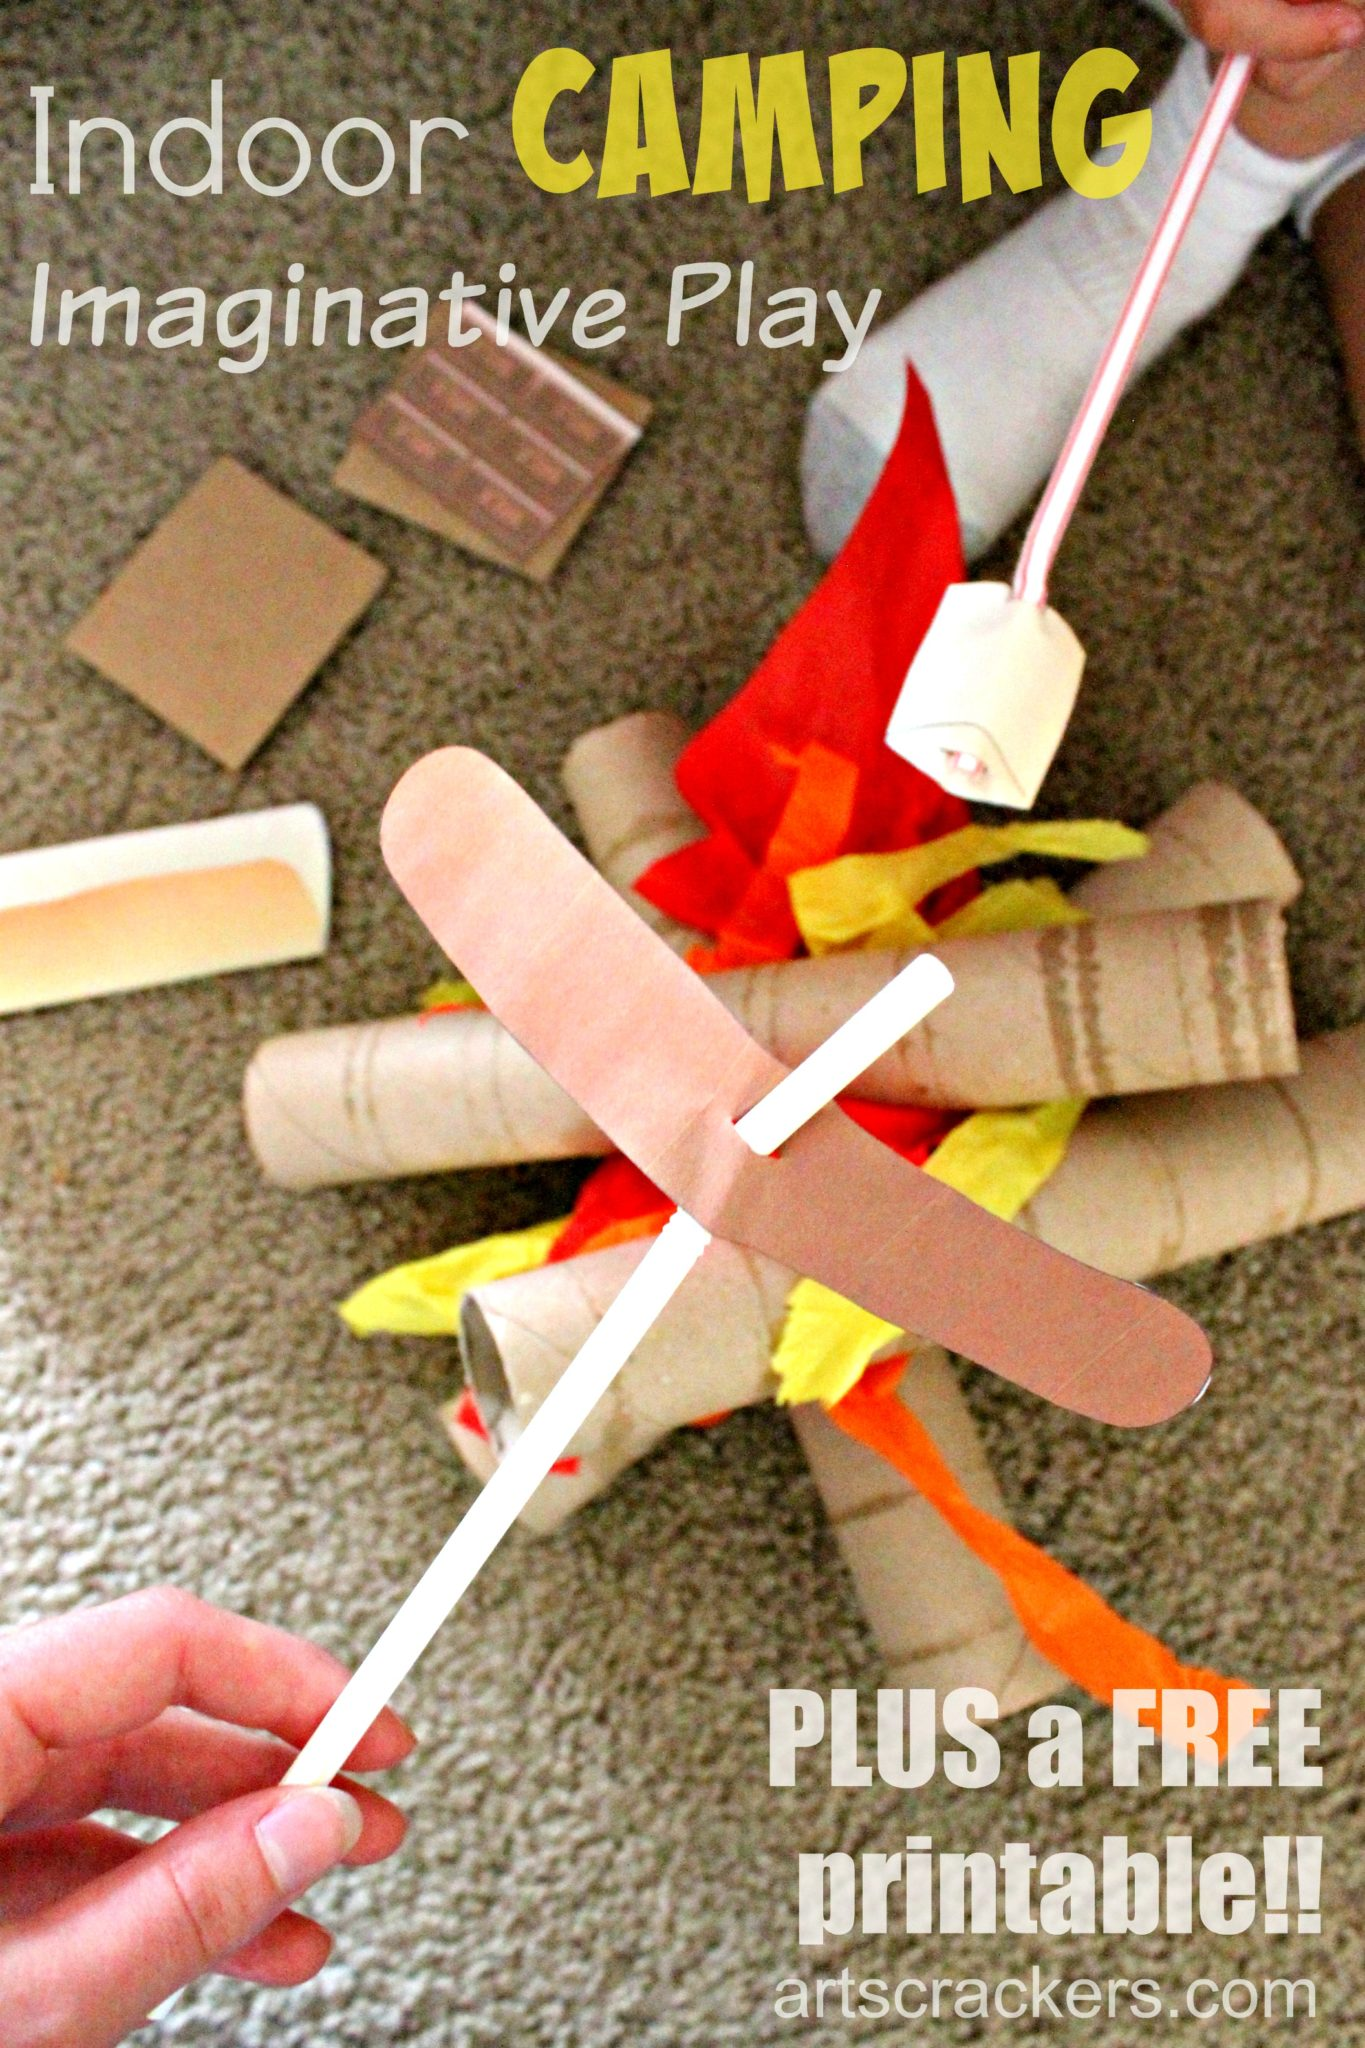 Indoor Camping Imaginative Play And Free Printable